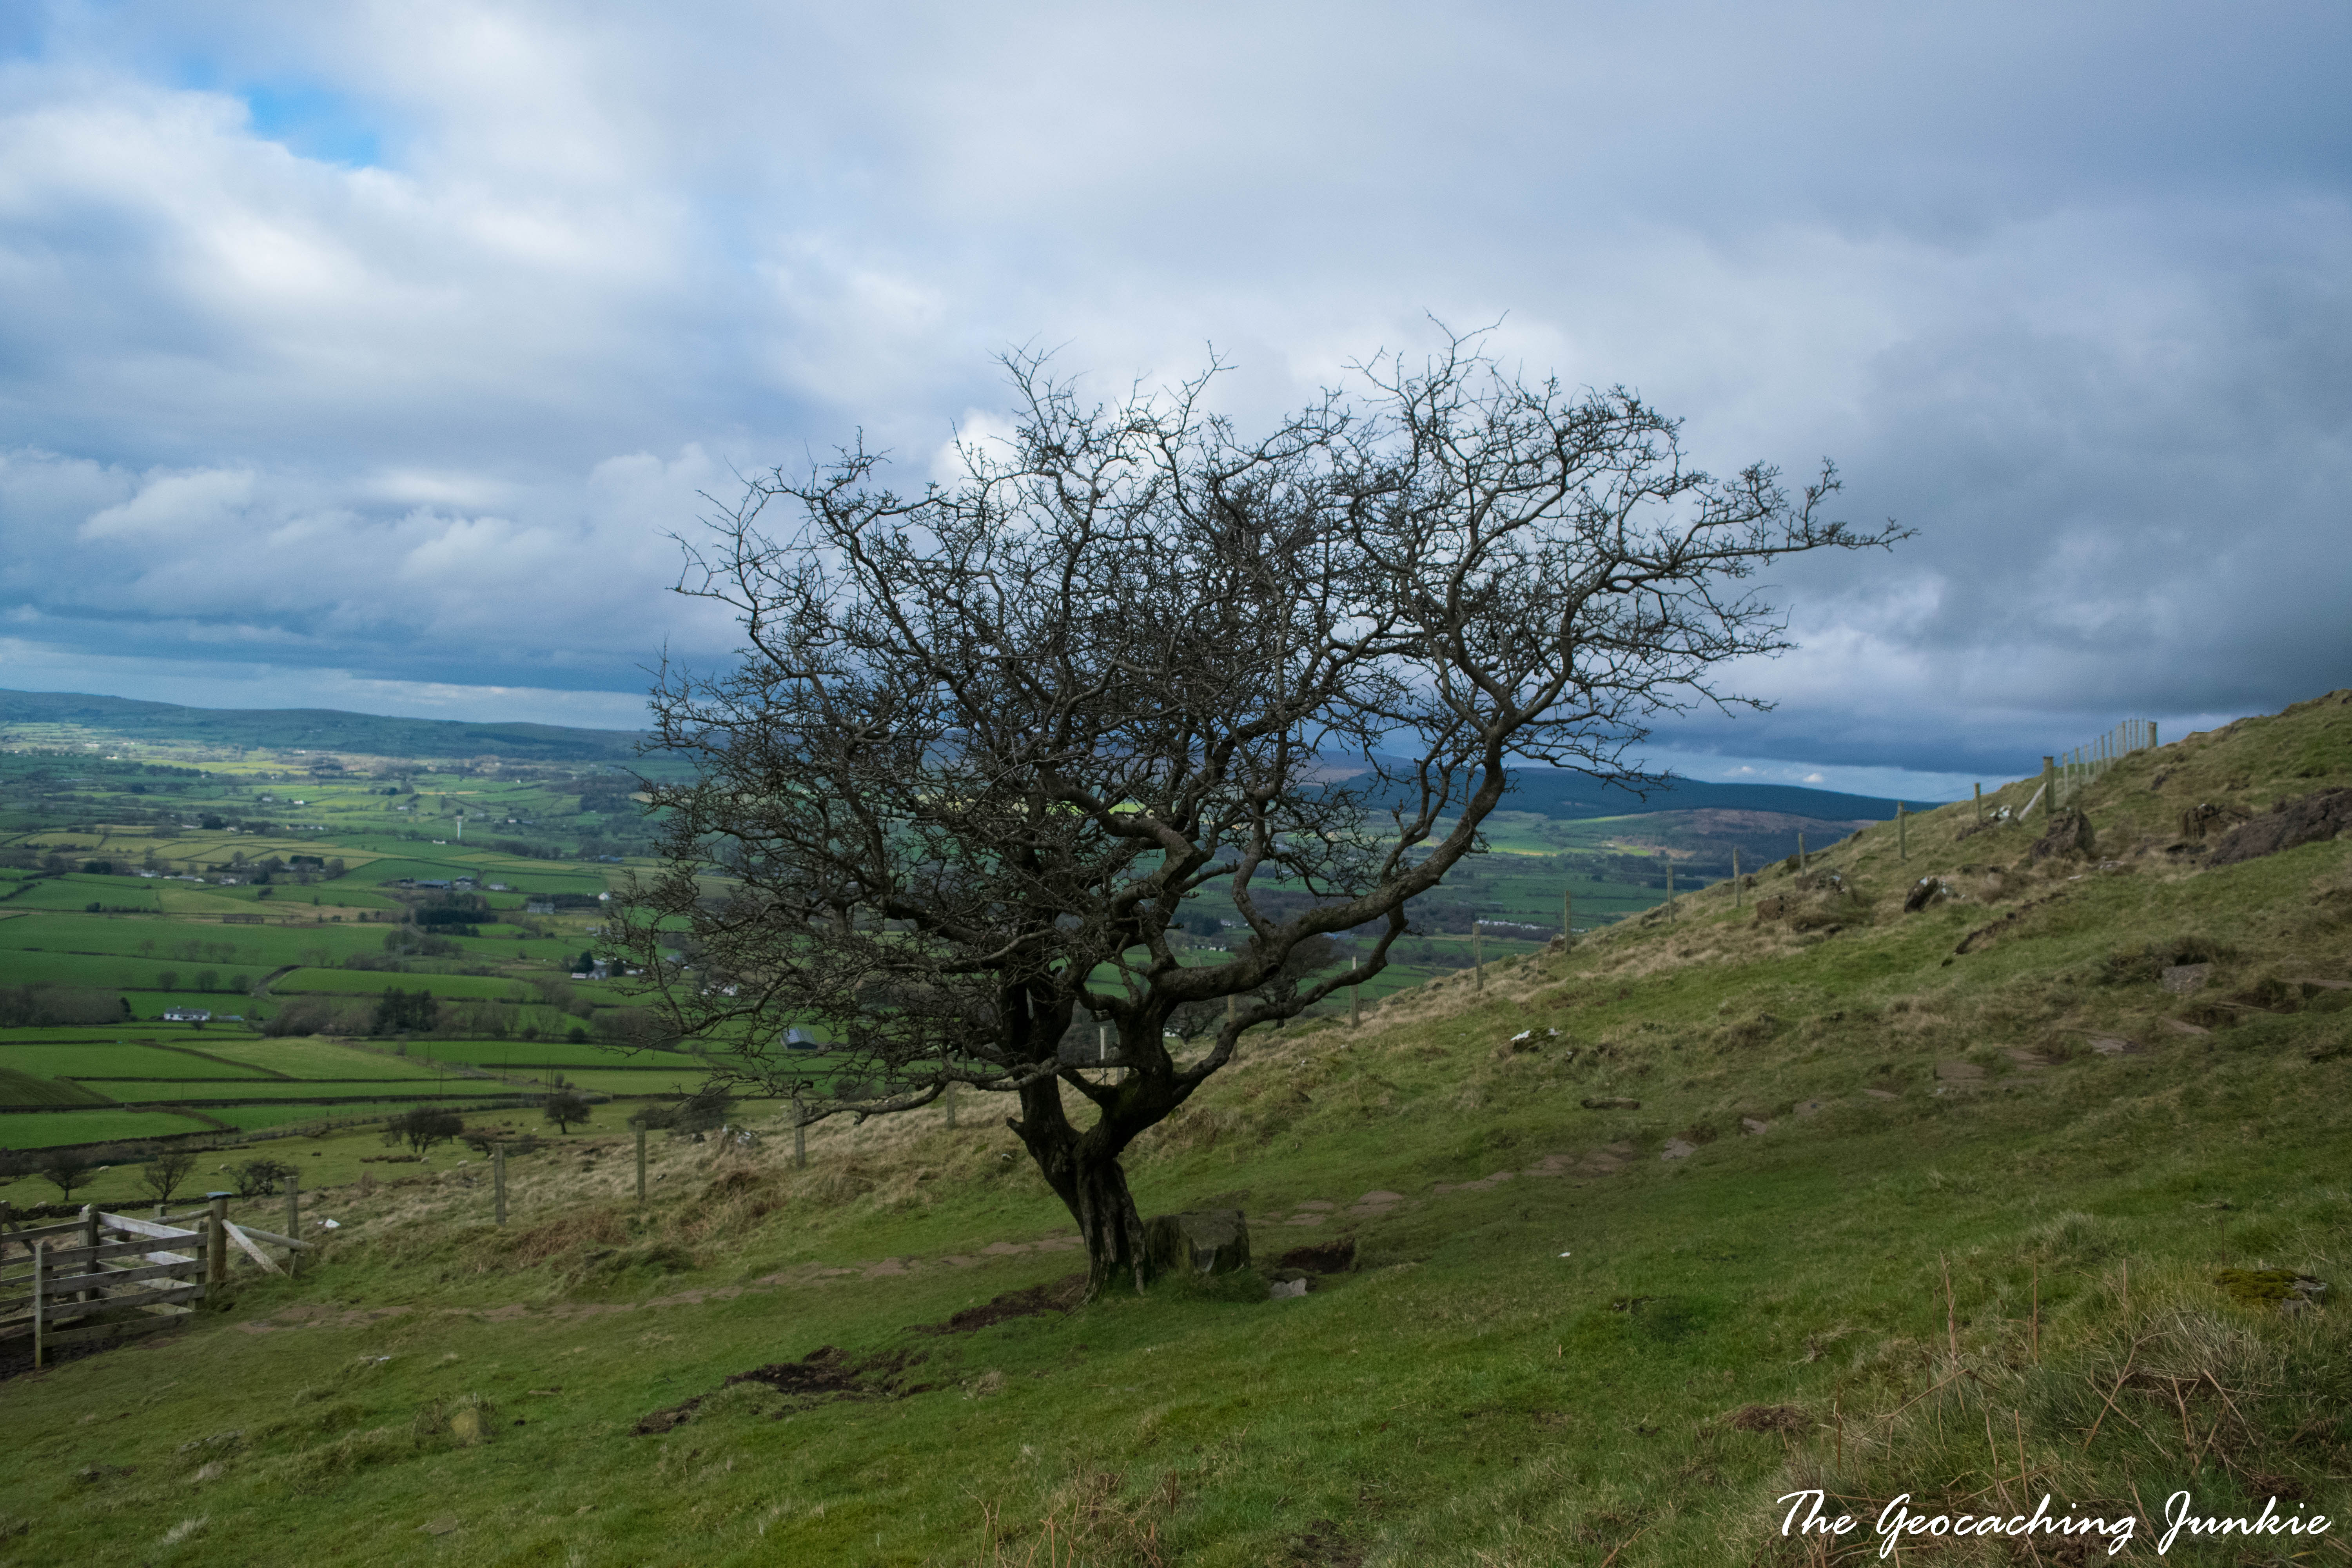 The Geocaching Junkie - Slemish: St Patrick's Mountain